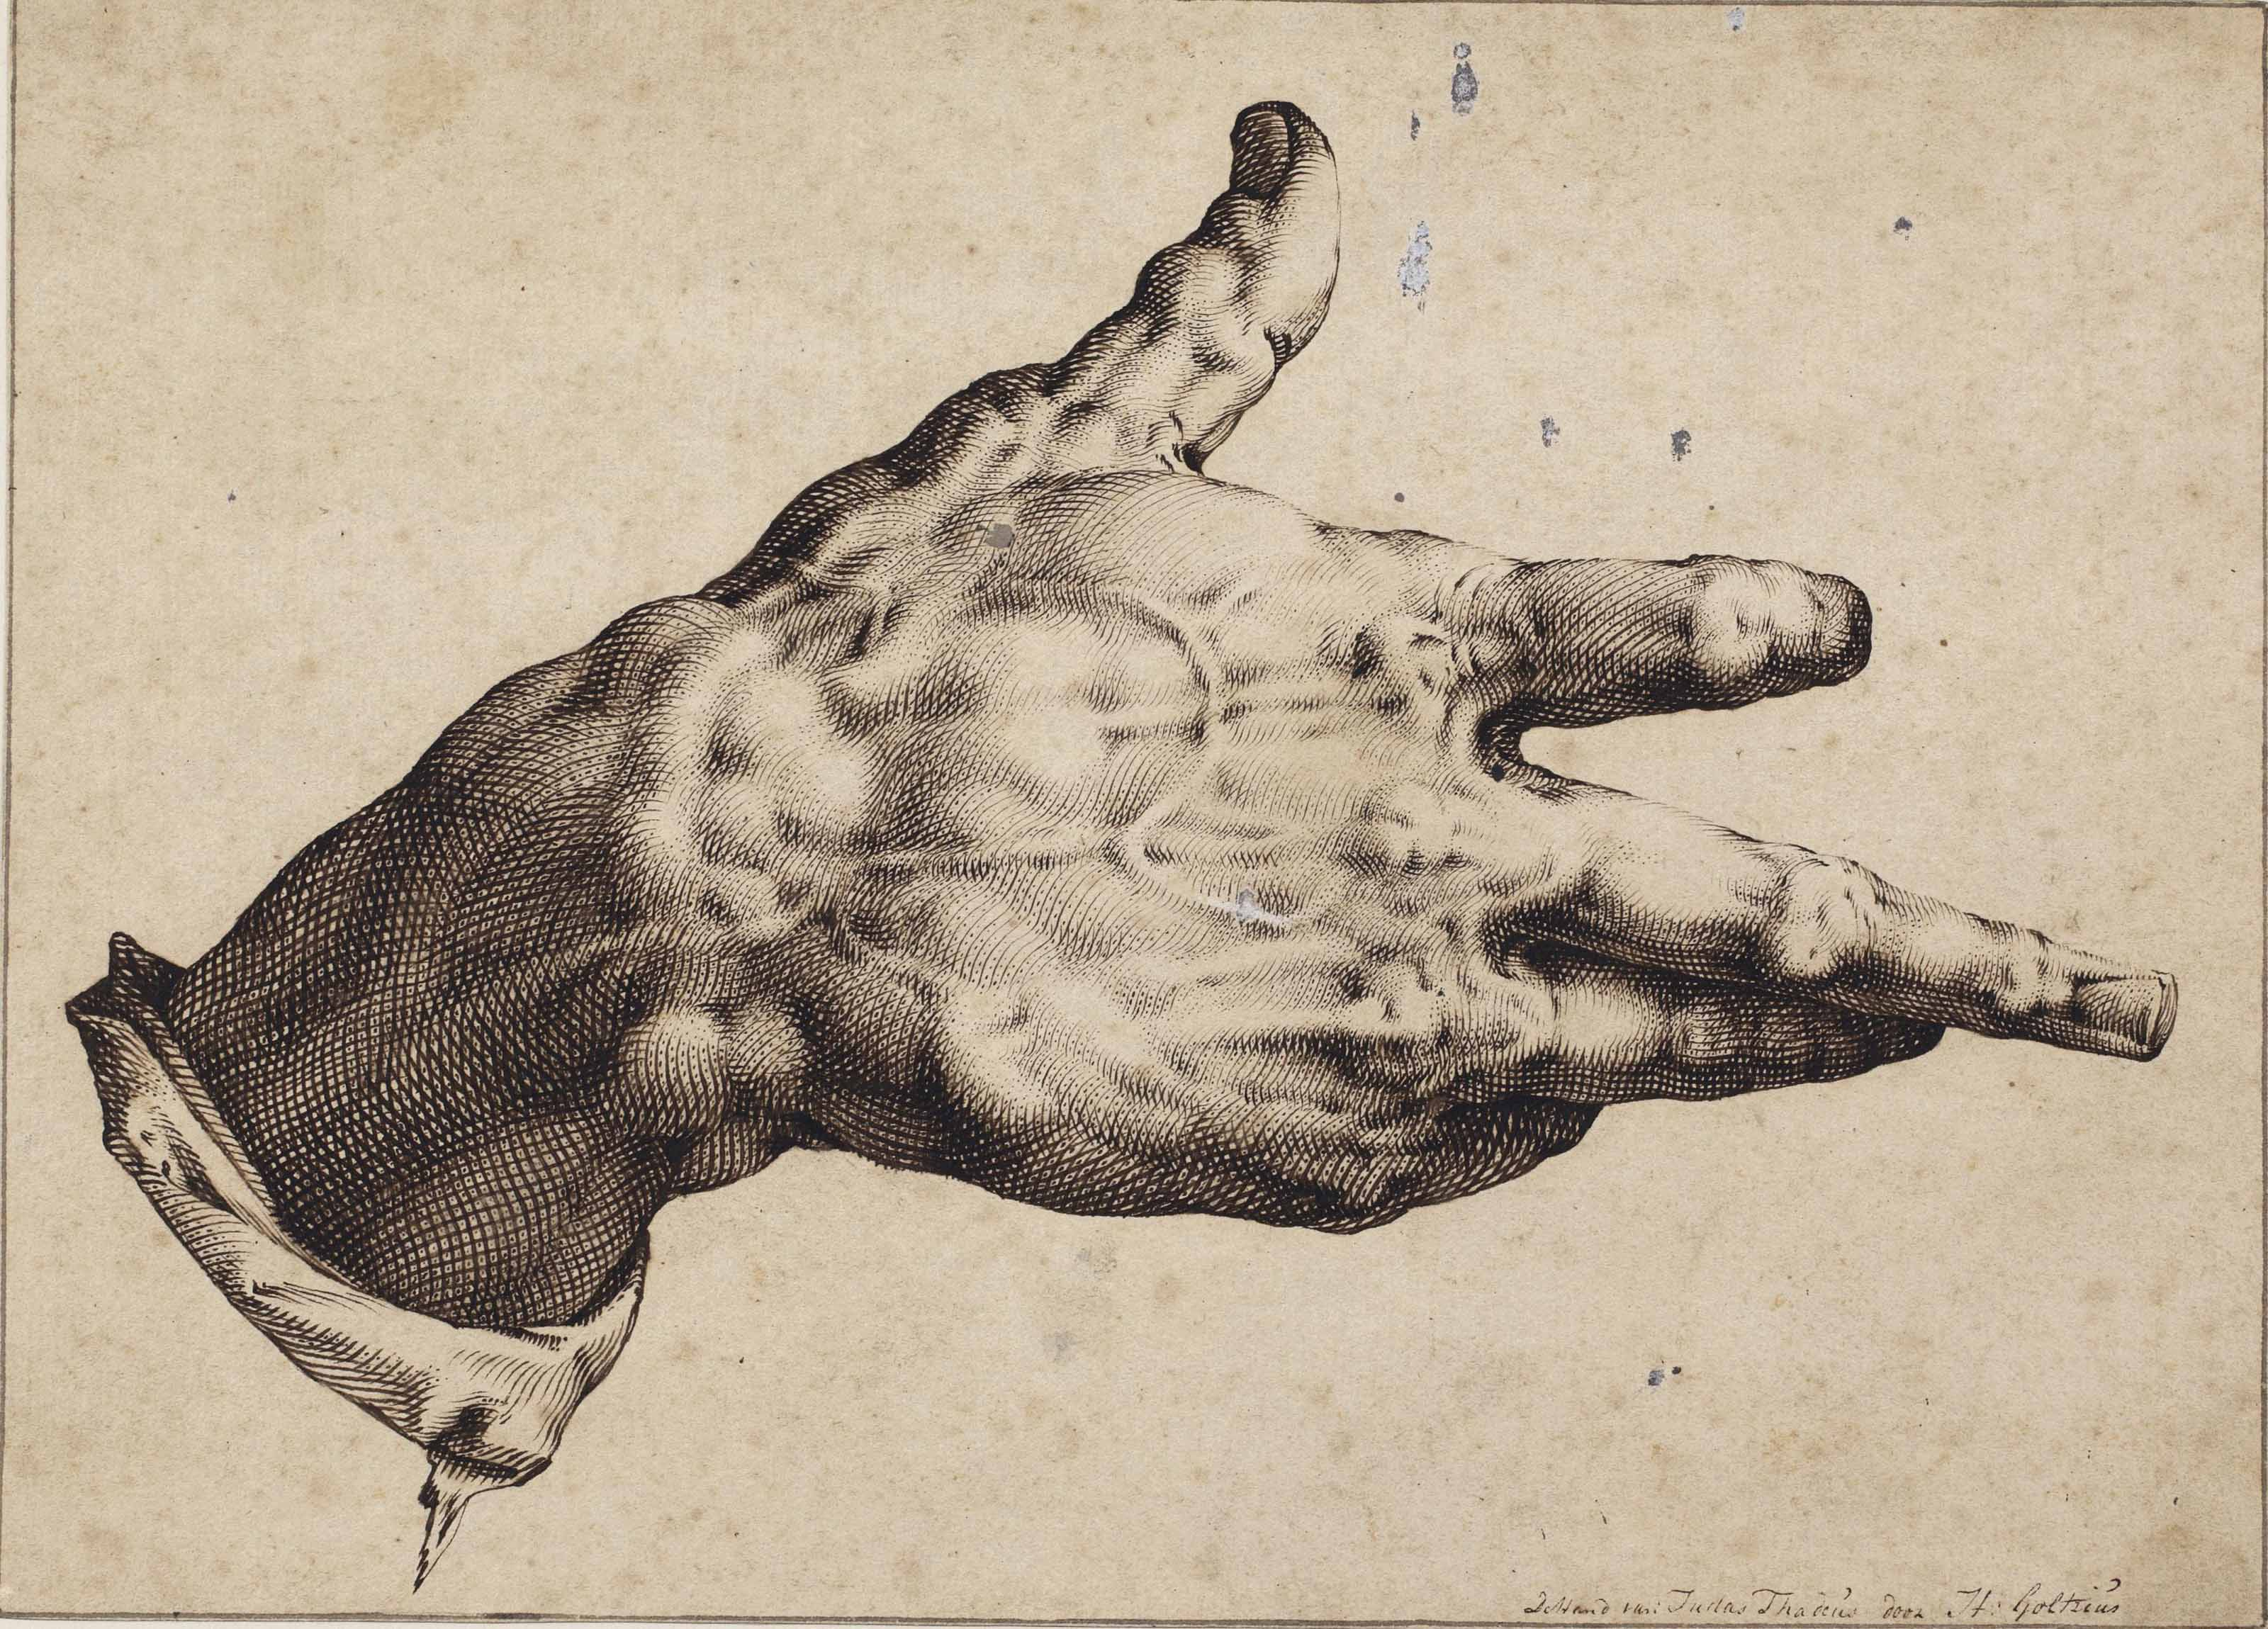 The artist's right hand